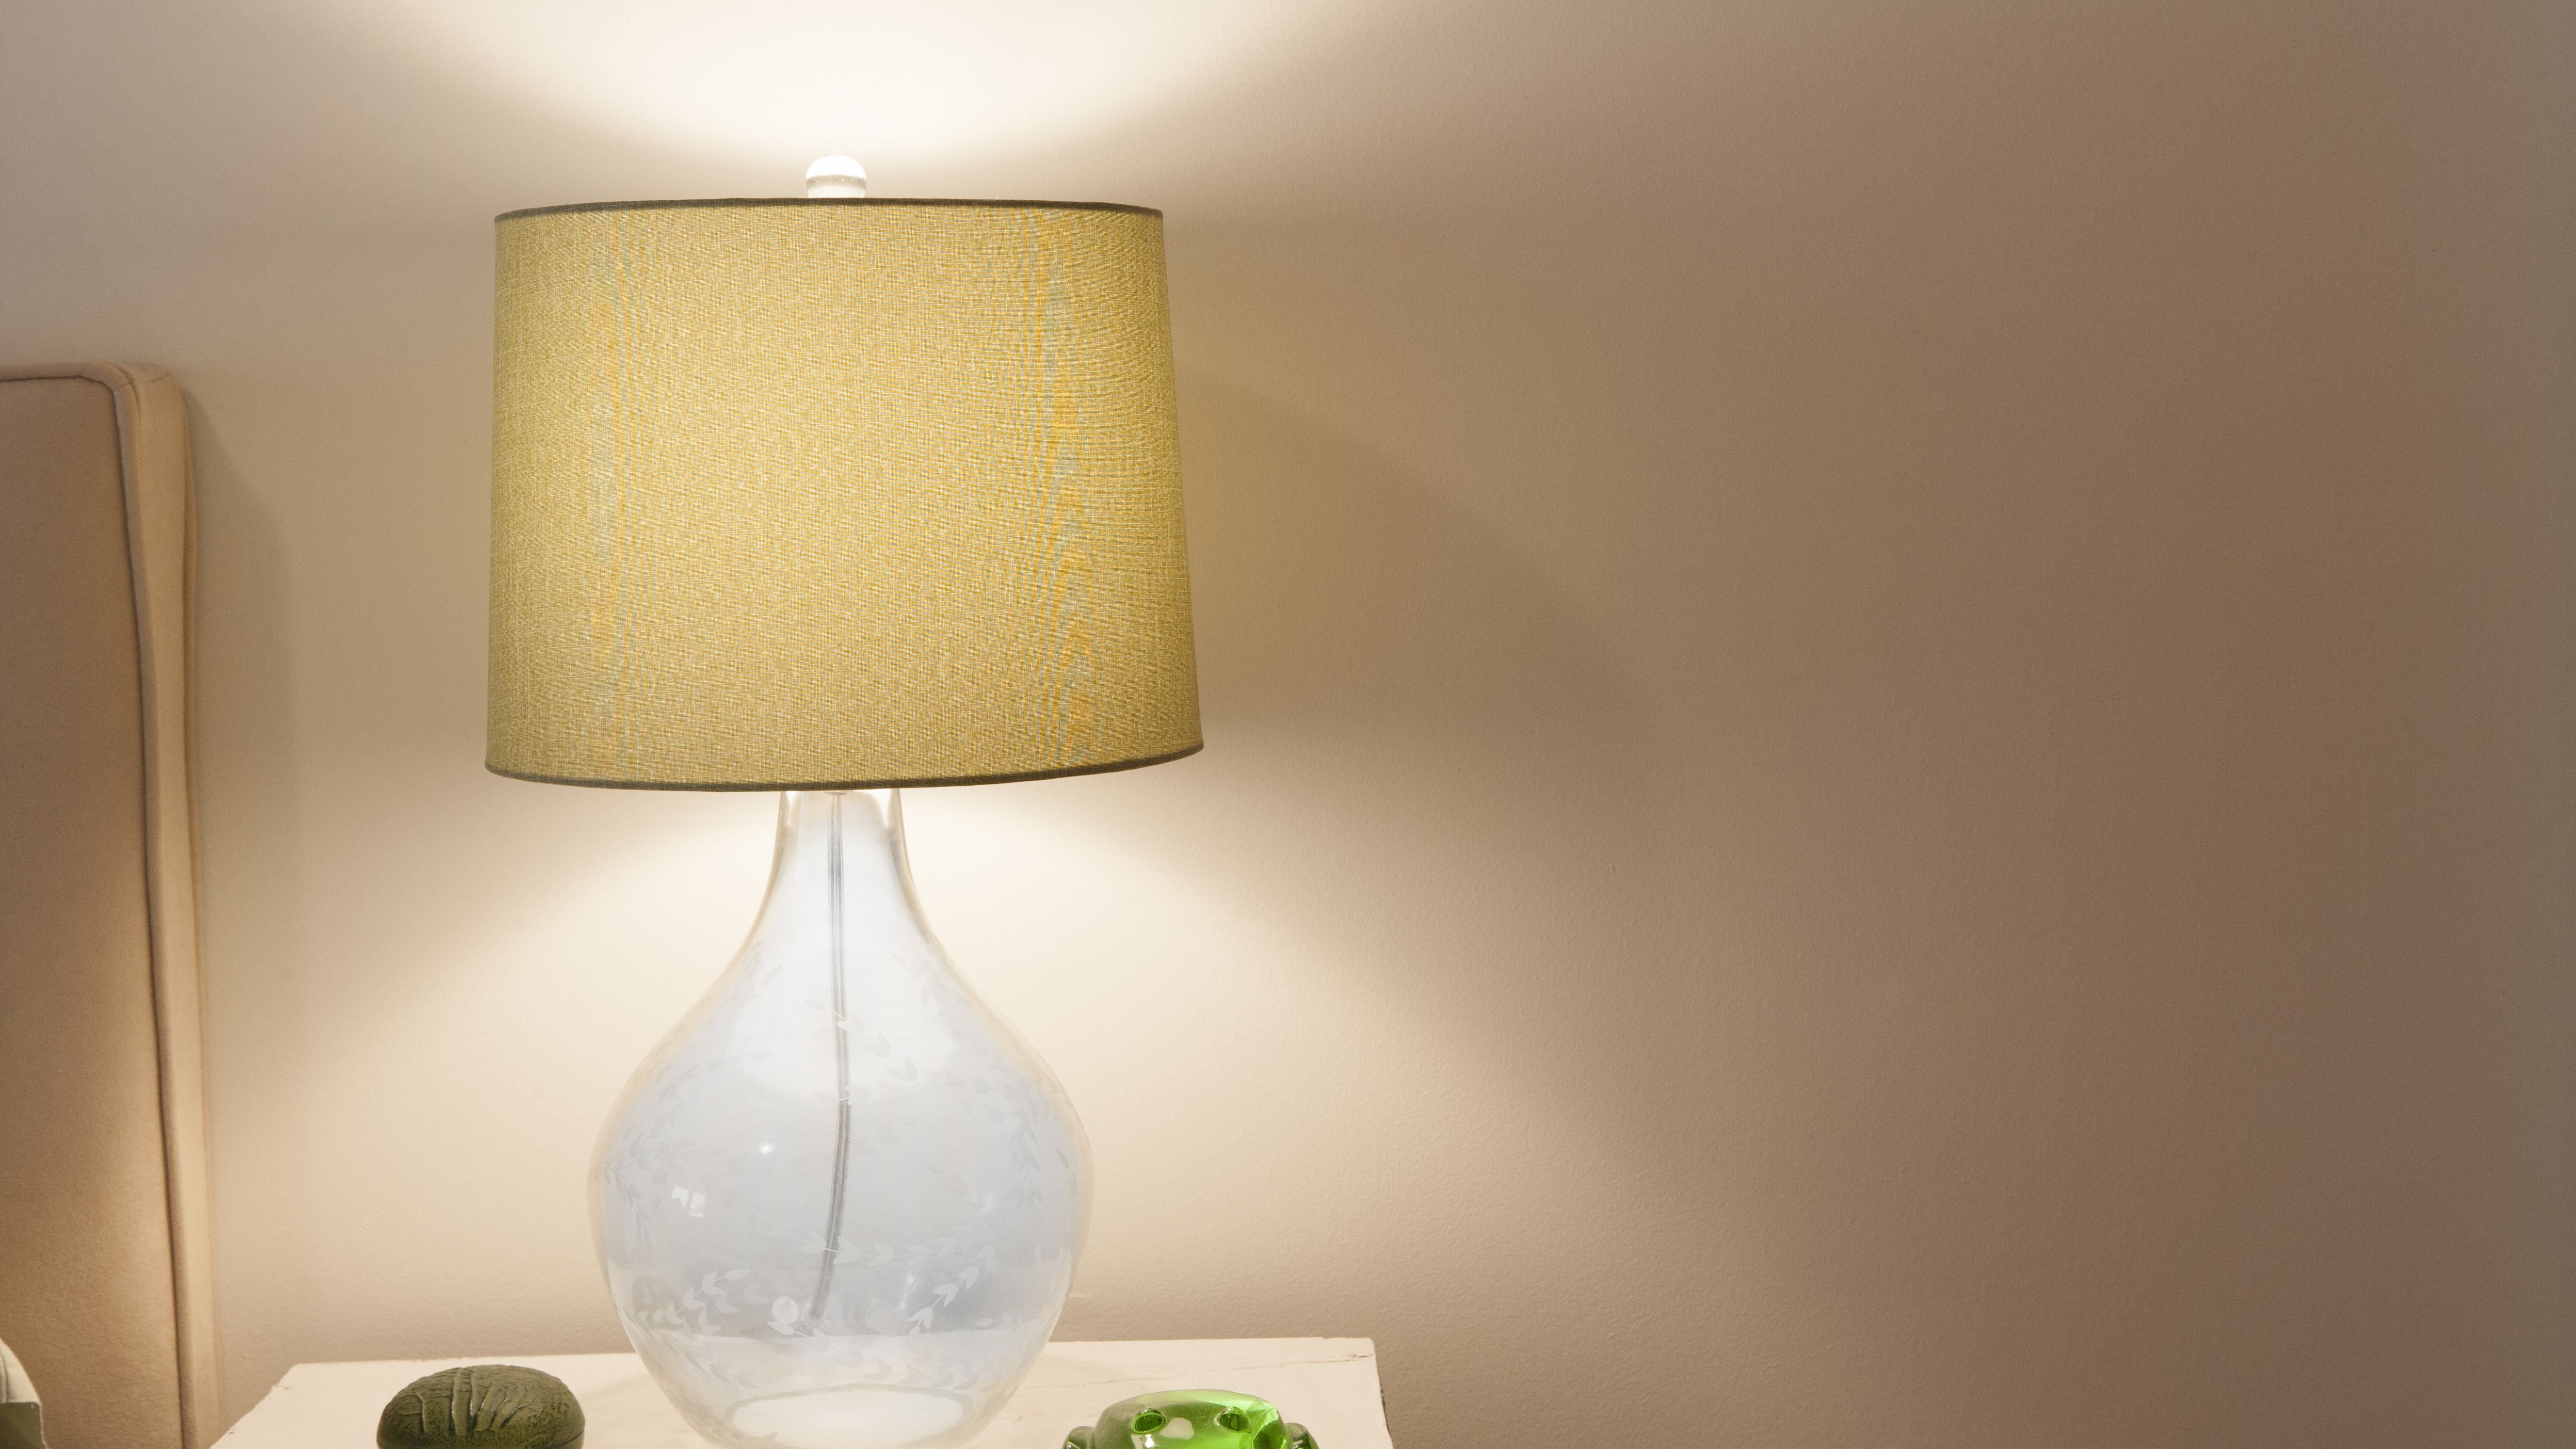 5 Tips For Choosing The Right Lampshade